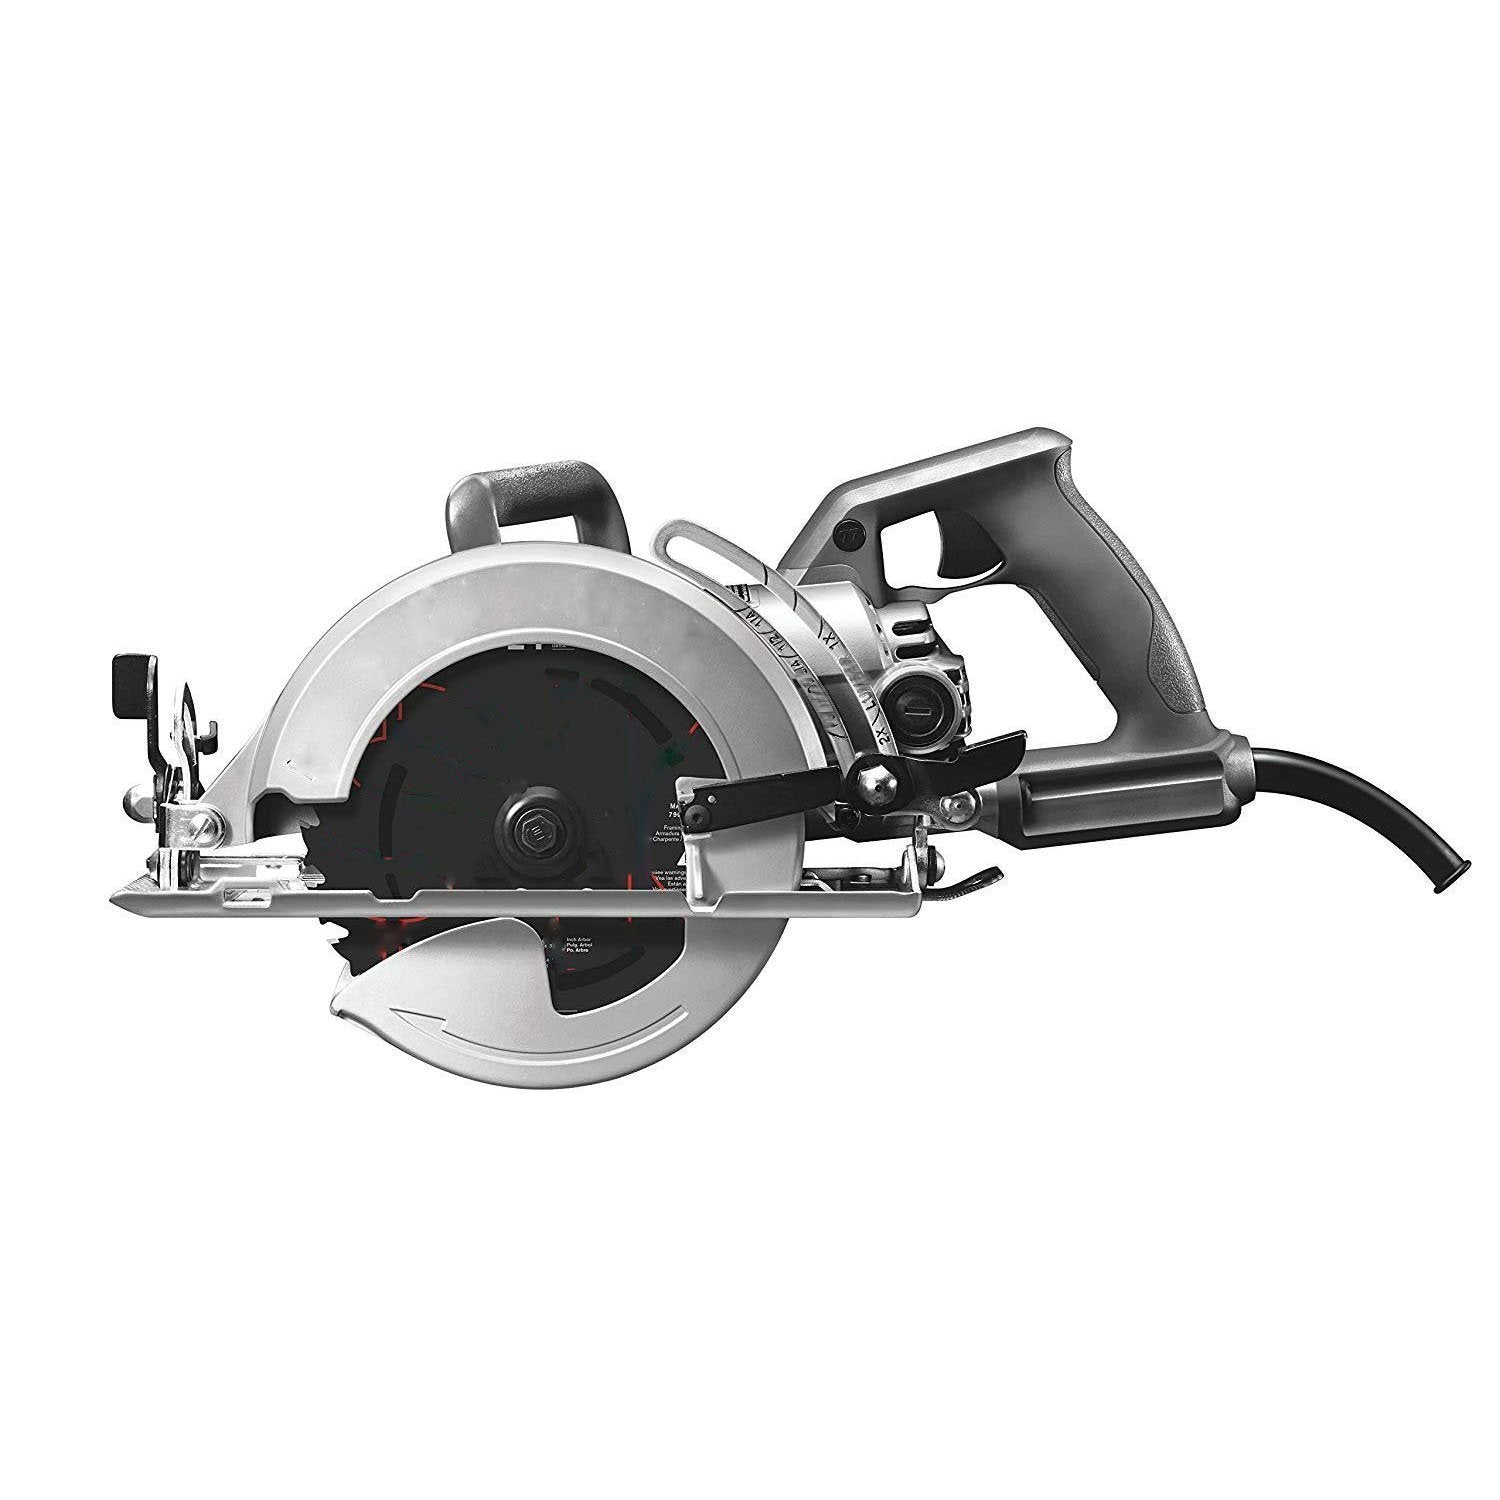 51 Degree Bevel Aluminum Drive Circular Saw